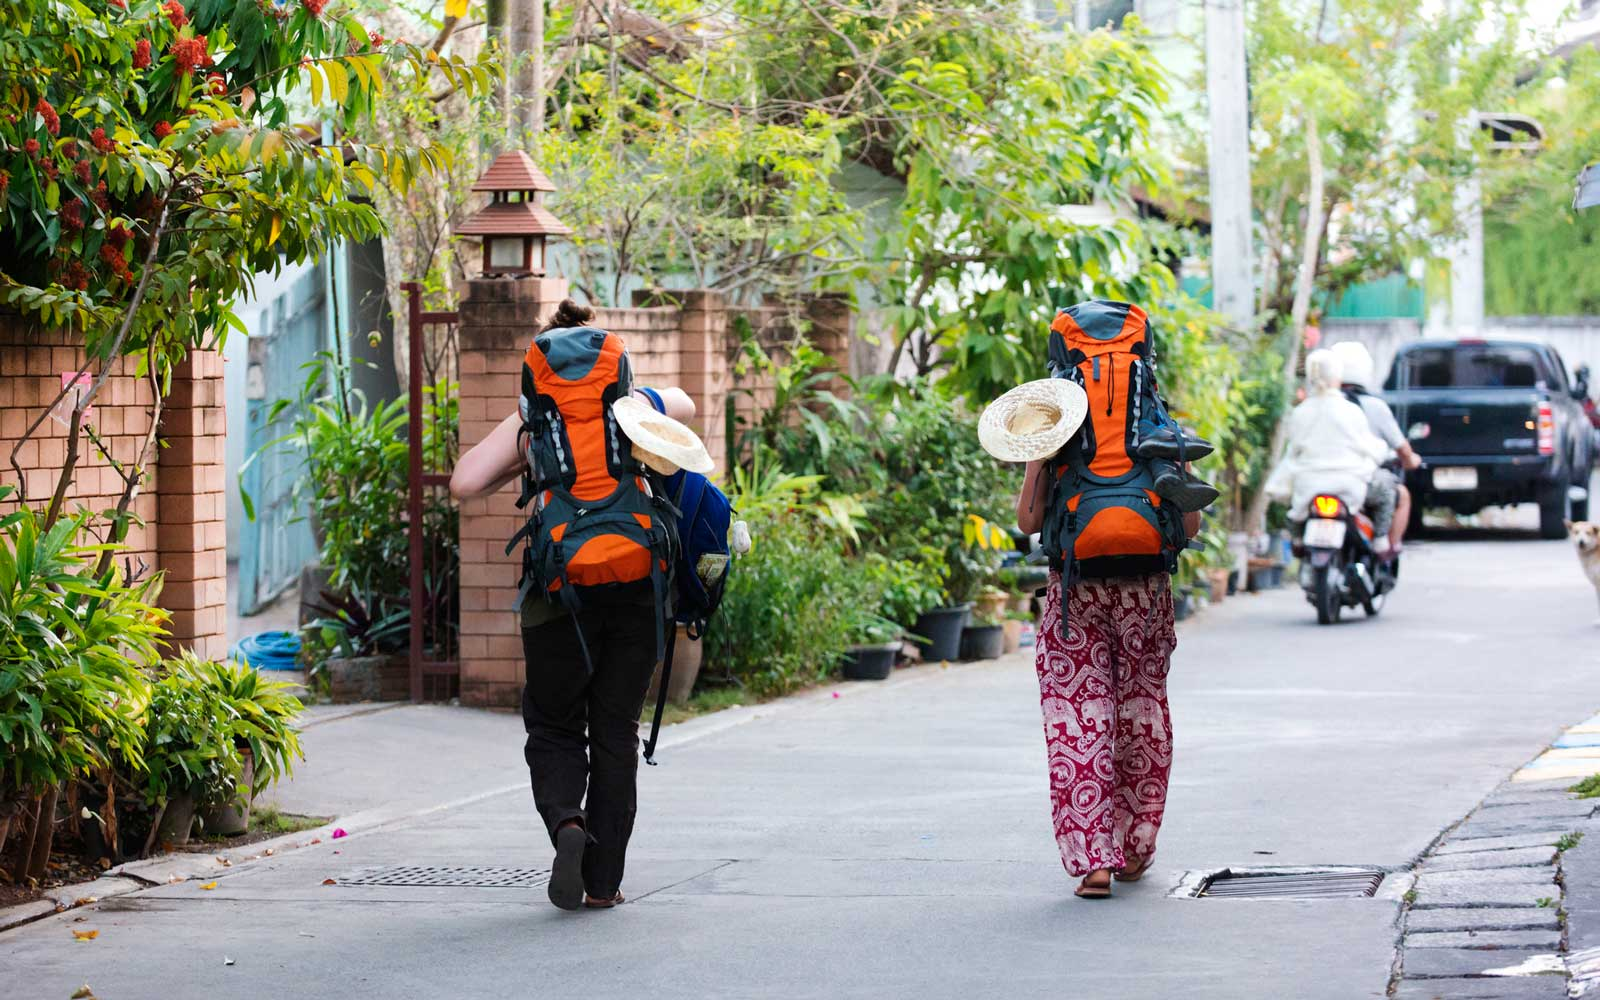 Backpackers Are Begging to Fund Their Asia Travels and Locals Are Not Happy